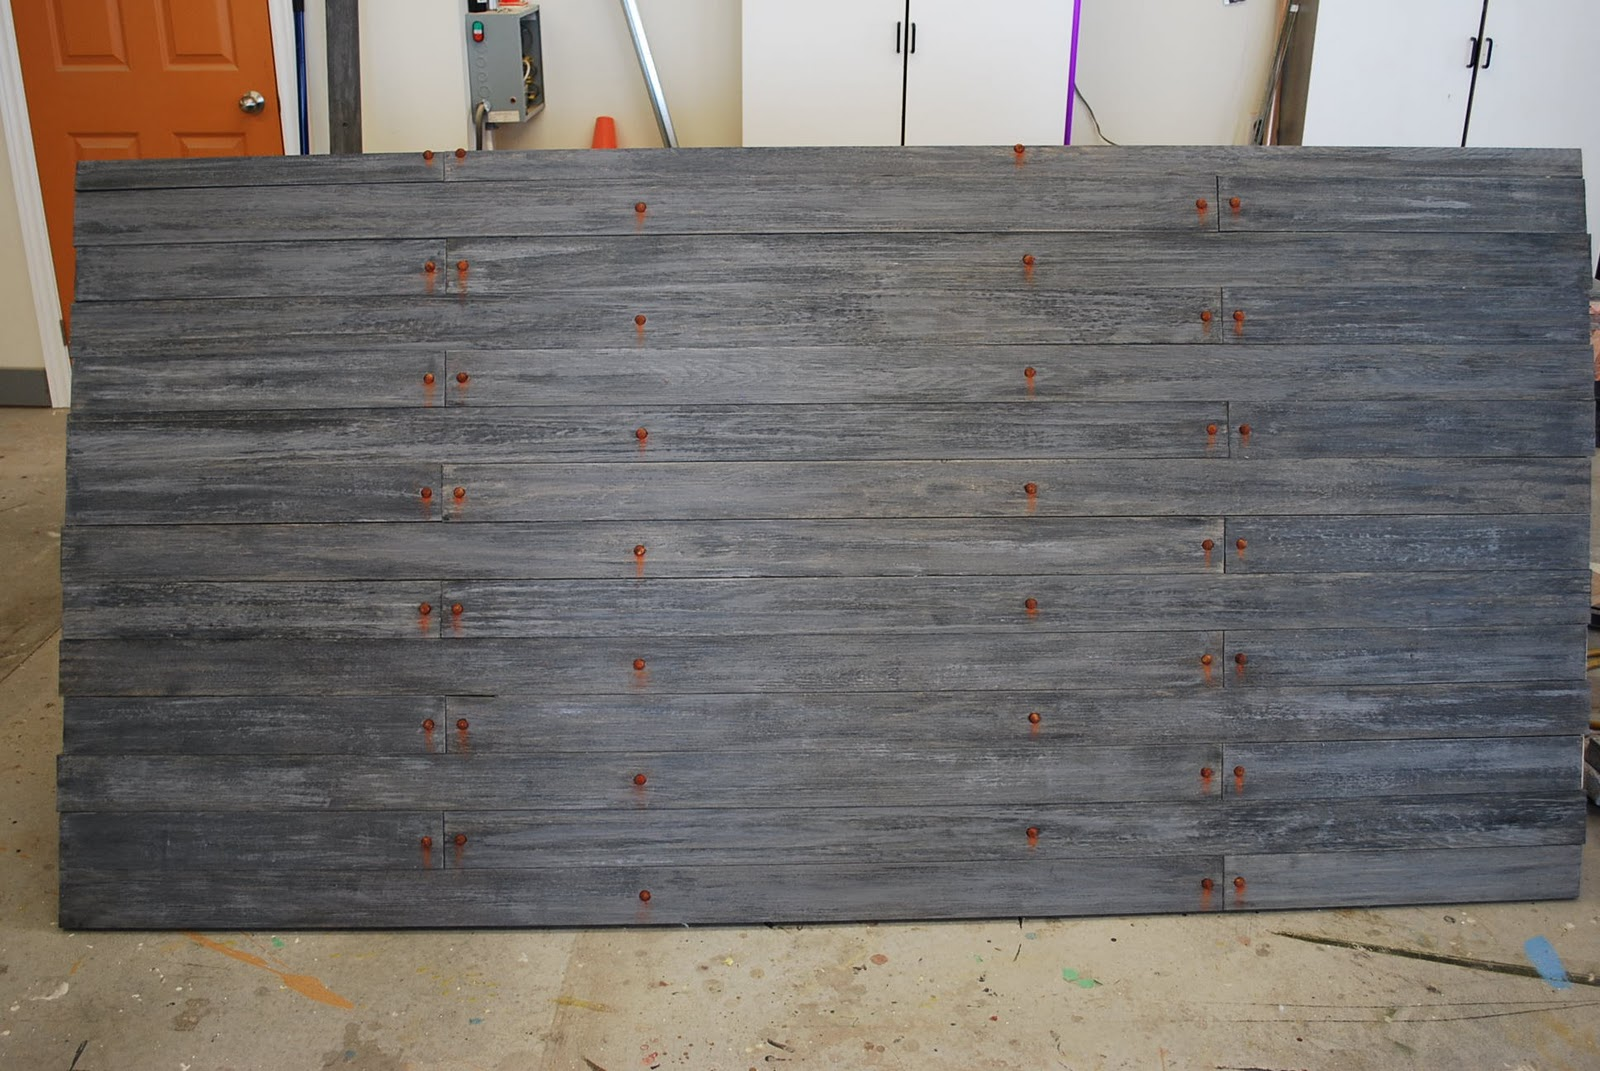 The Final Step Was To Mount All Weathered Planks 4X8 Sheet Of Plywood After That We Inserted Our Rusty Bolt Heads Added Some Rust Stains